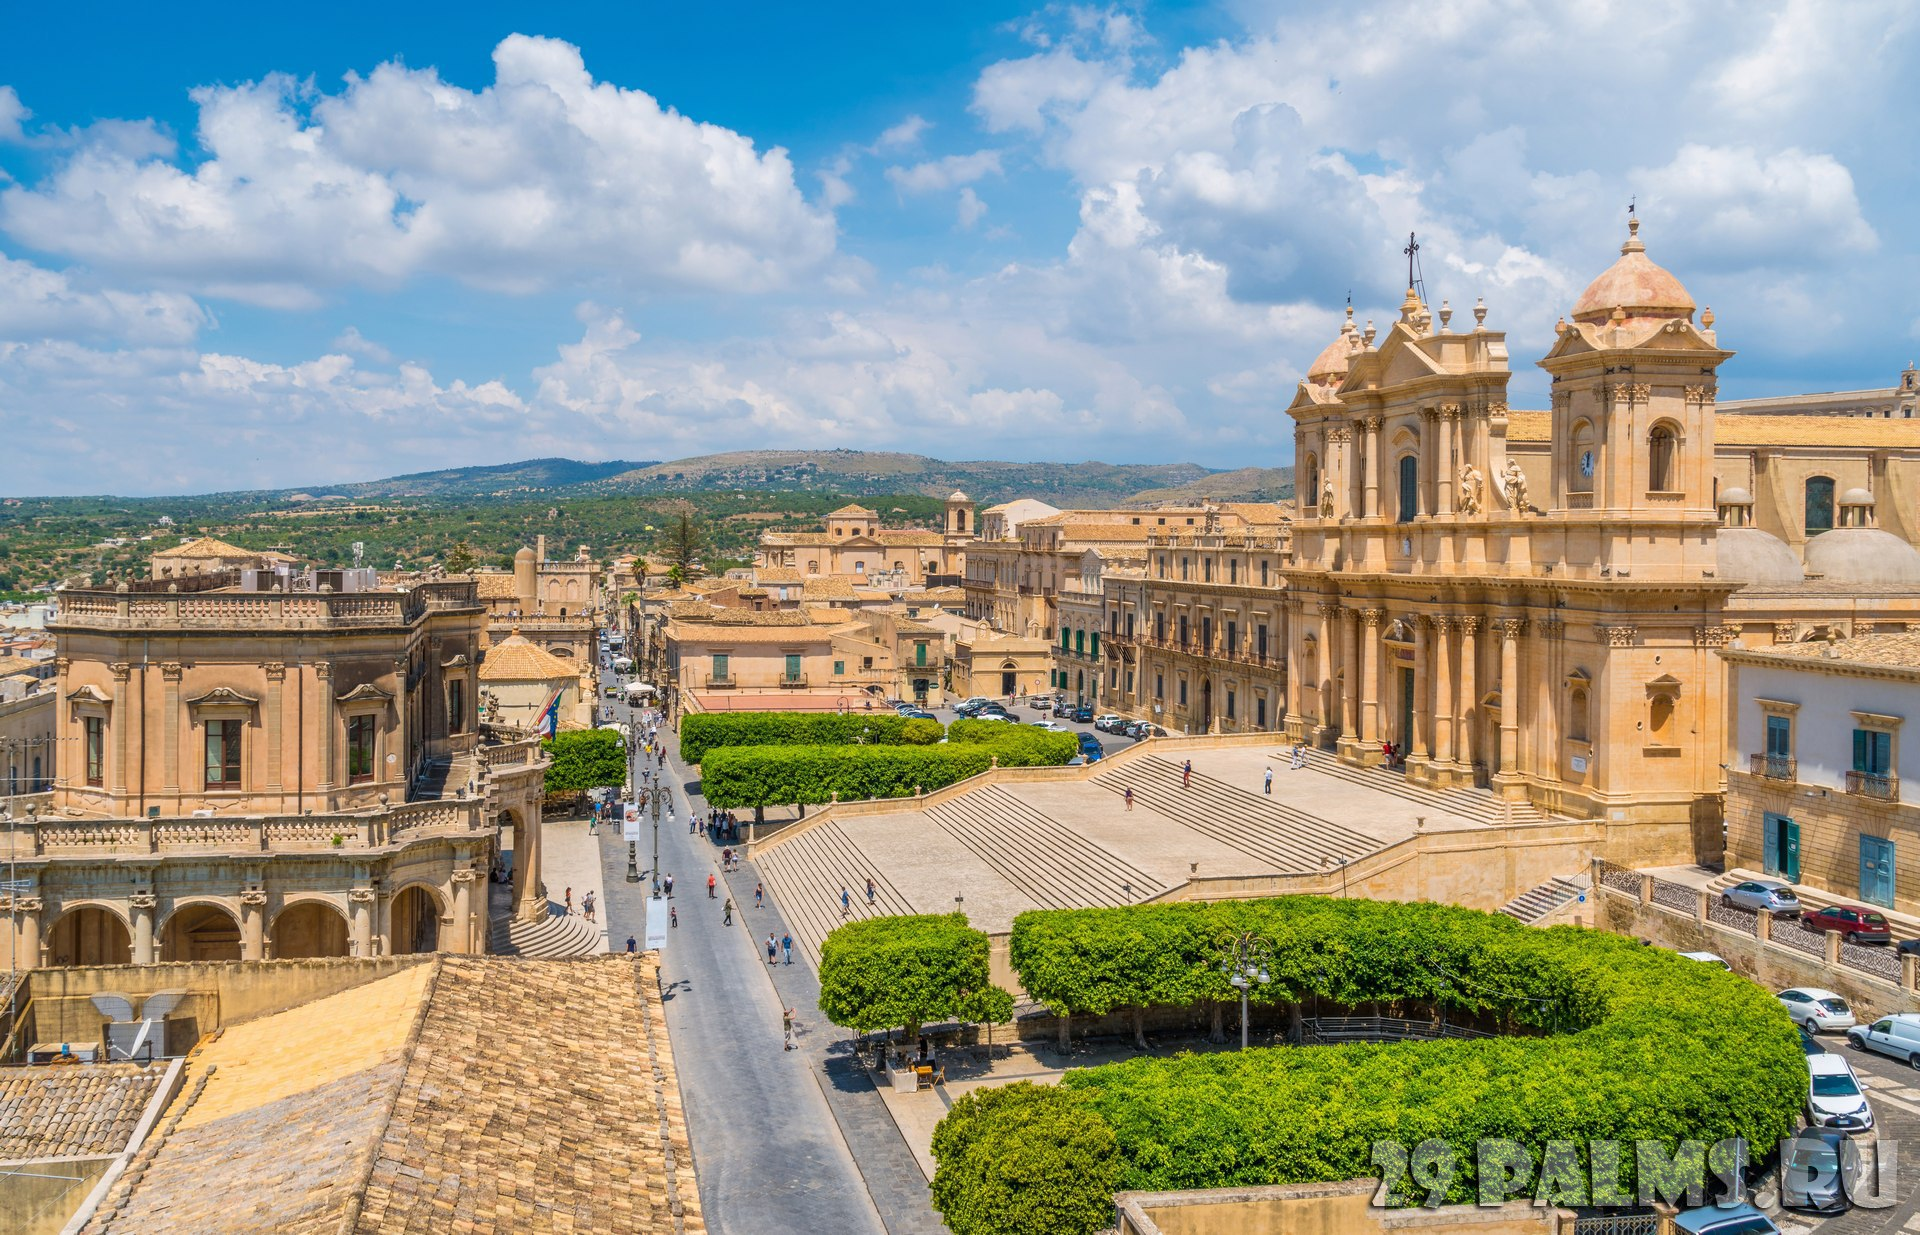 Италия. Сицилия. Ното. Panoramic view in Noto, with the Cathedral and the Palazzo Ducezio. Province of Siracusa, Sicily, Italy. Фото e55evu - Depositphotos